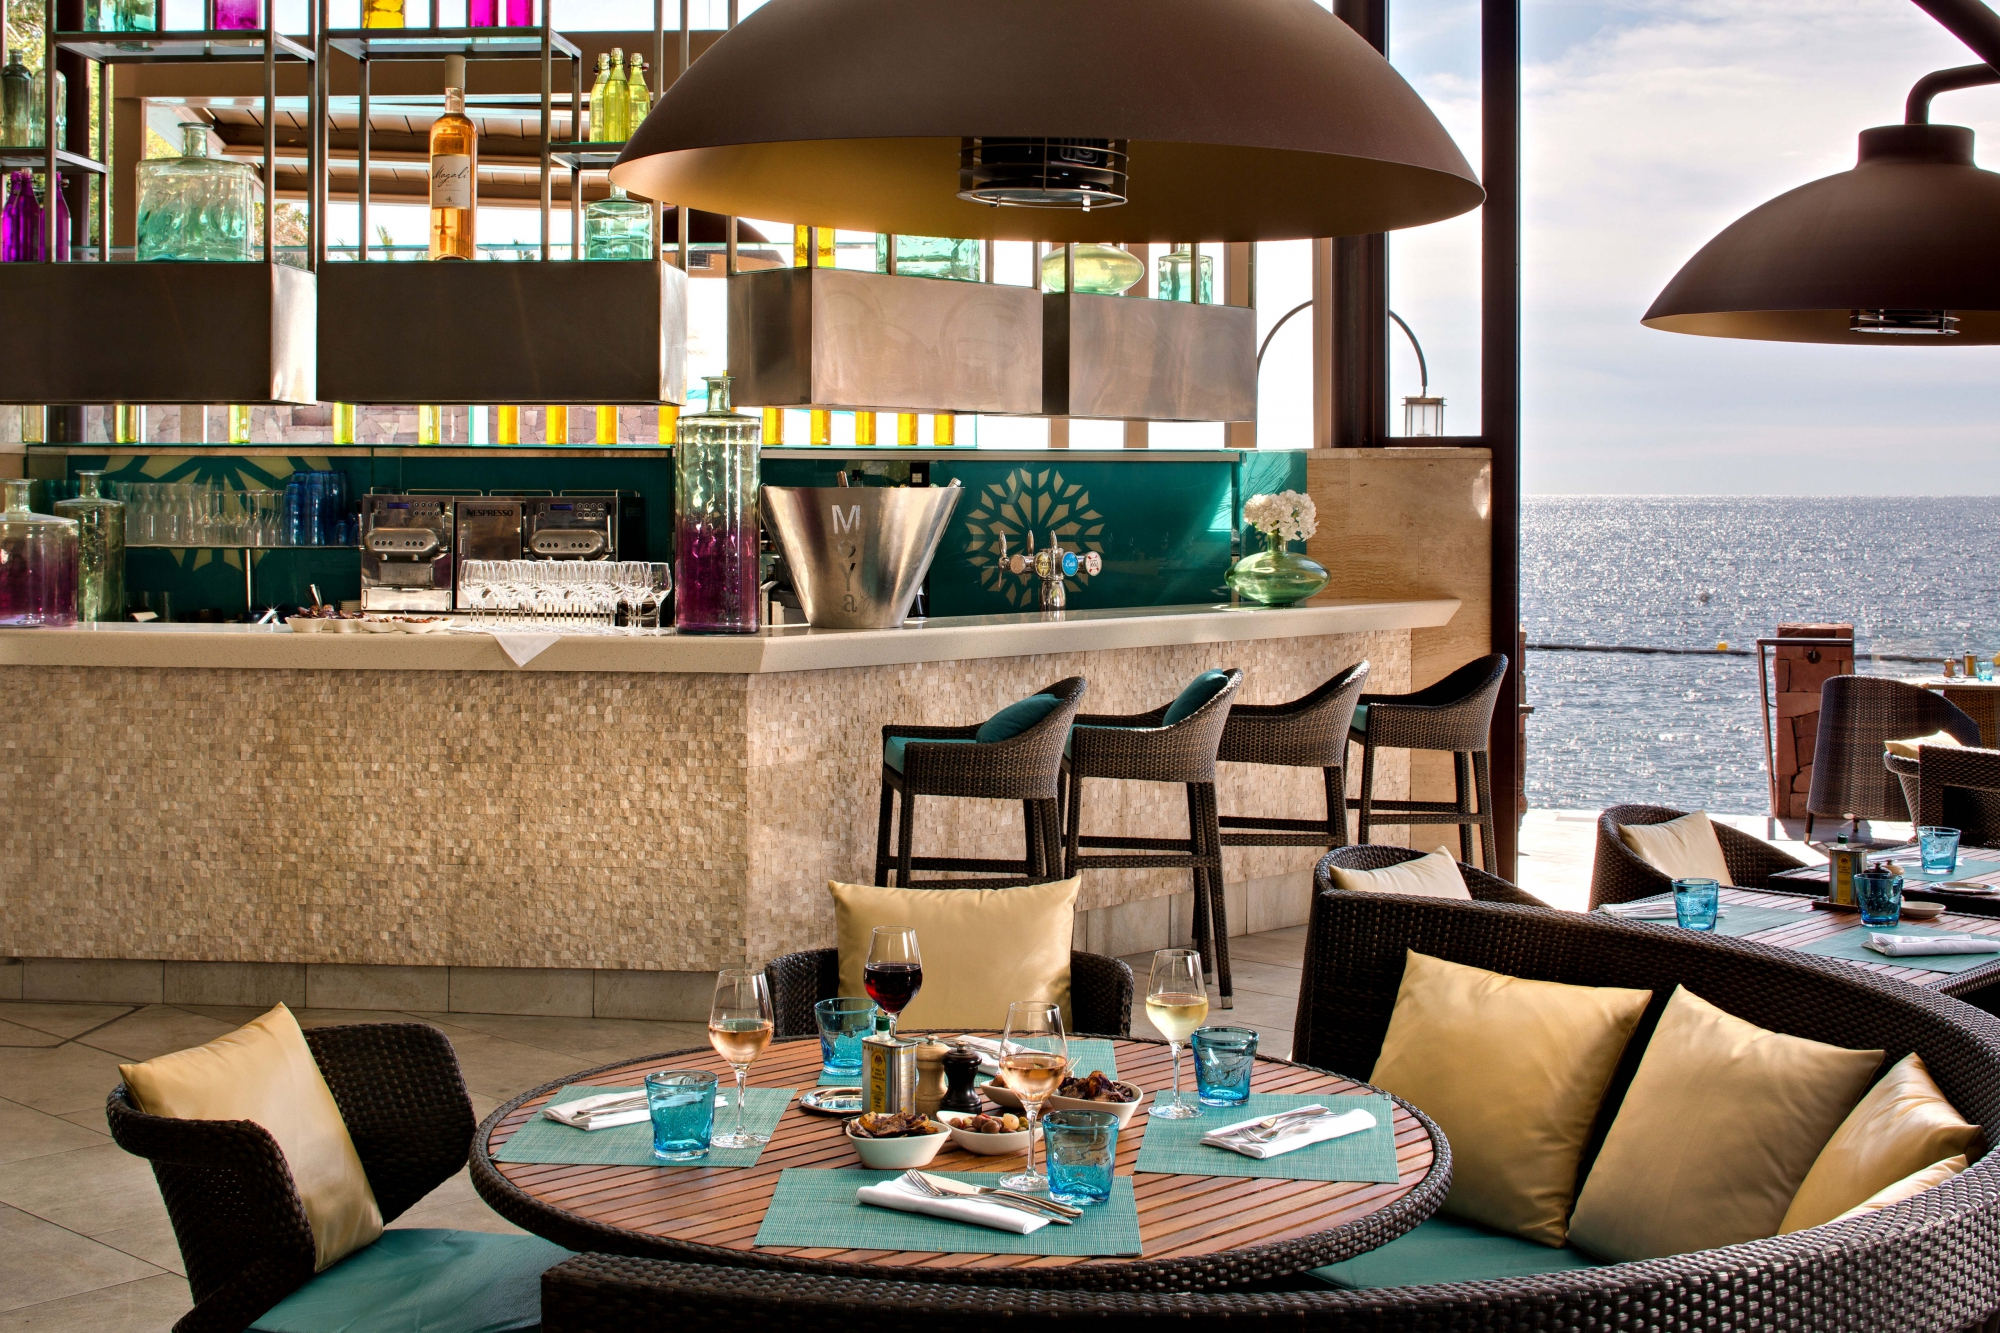 495/import-from-v1/images/restaurant/Moya-Beach-Restaurant-Basse res.jpg